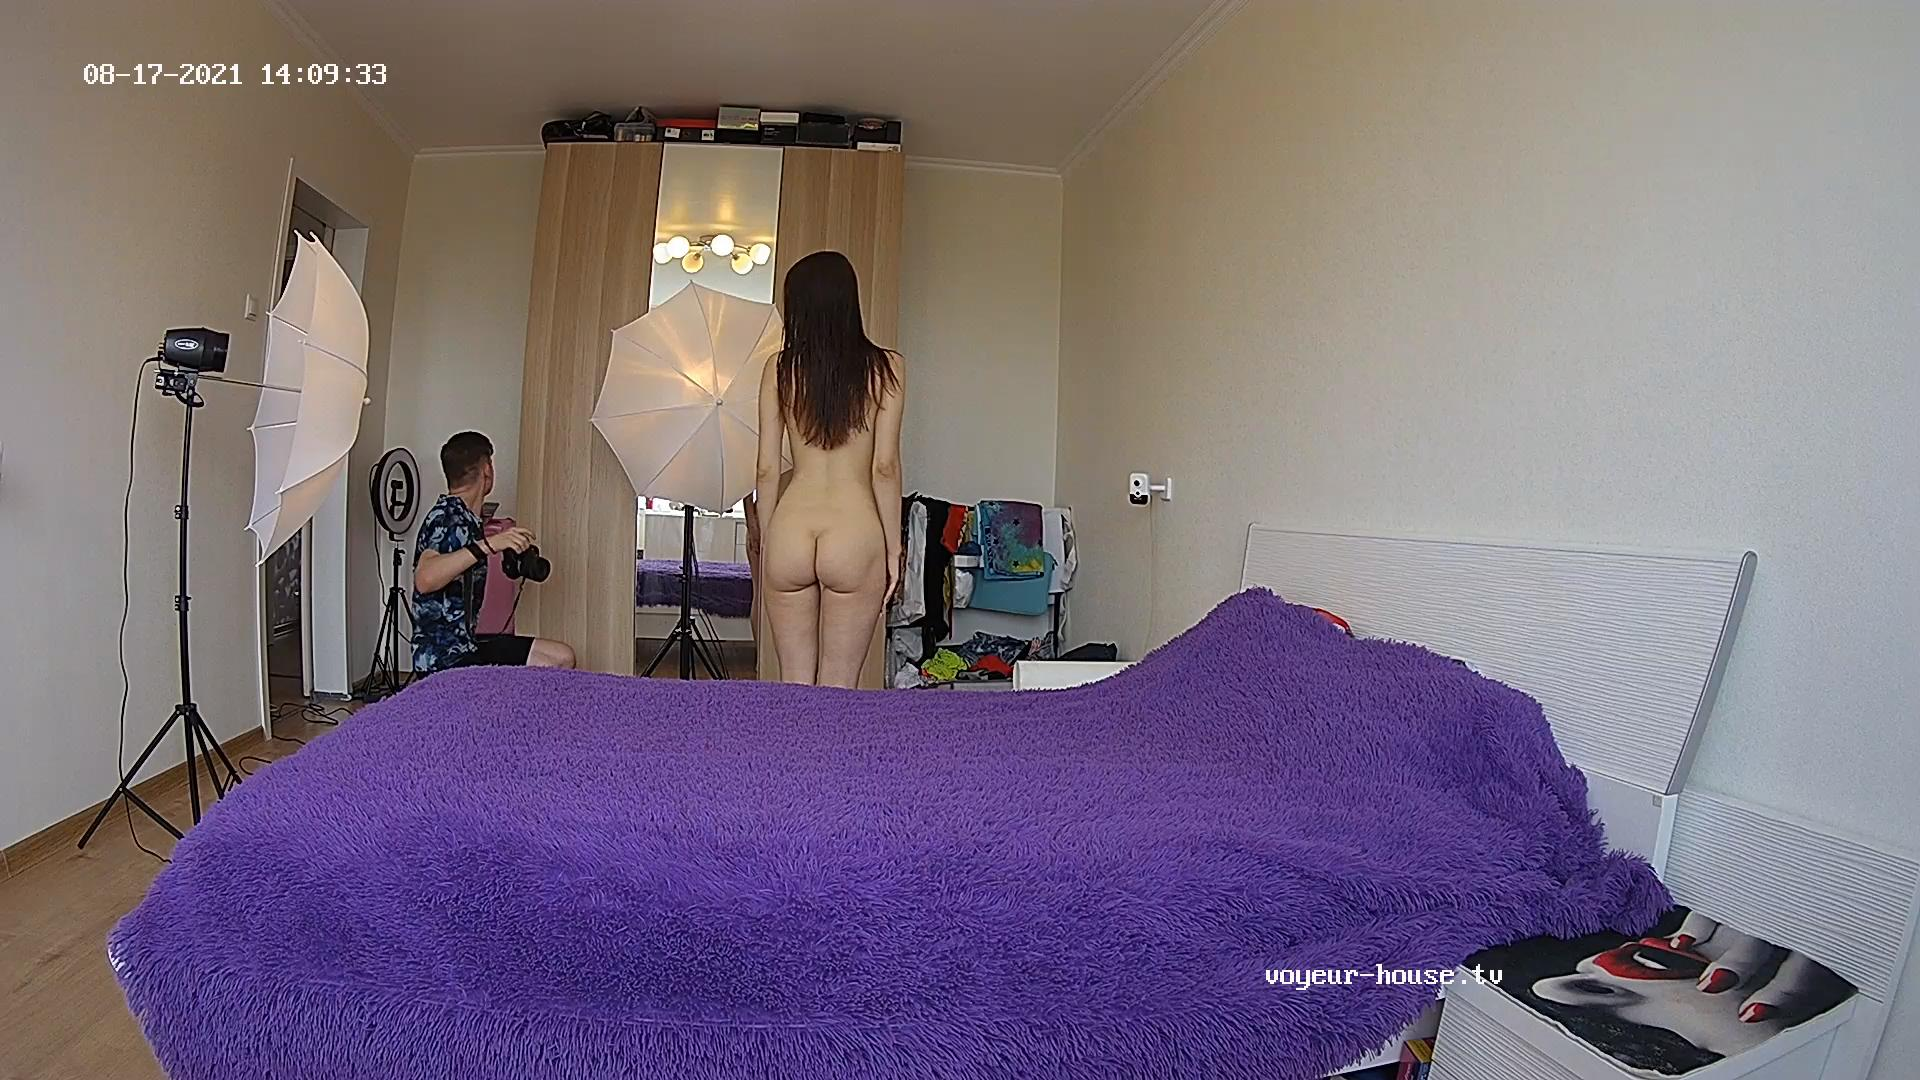 Guest girl quick photoshoot Aug 17 2021 cam 1